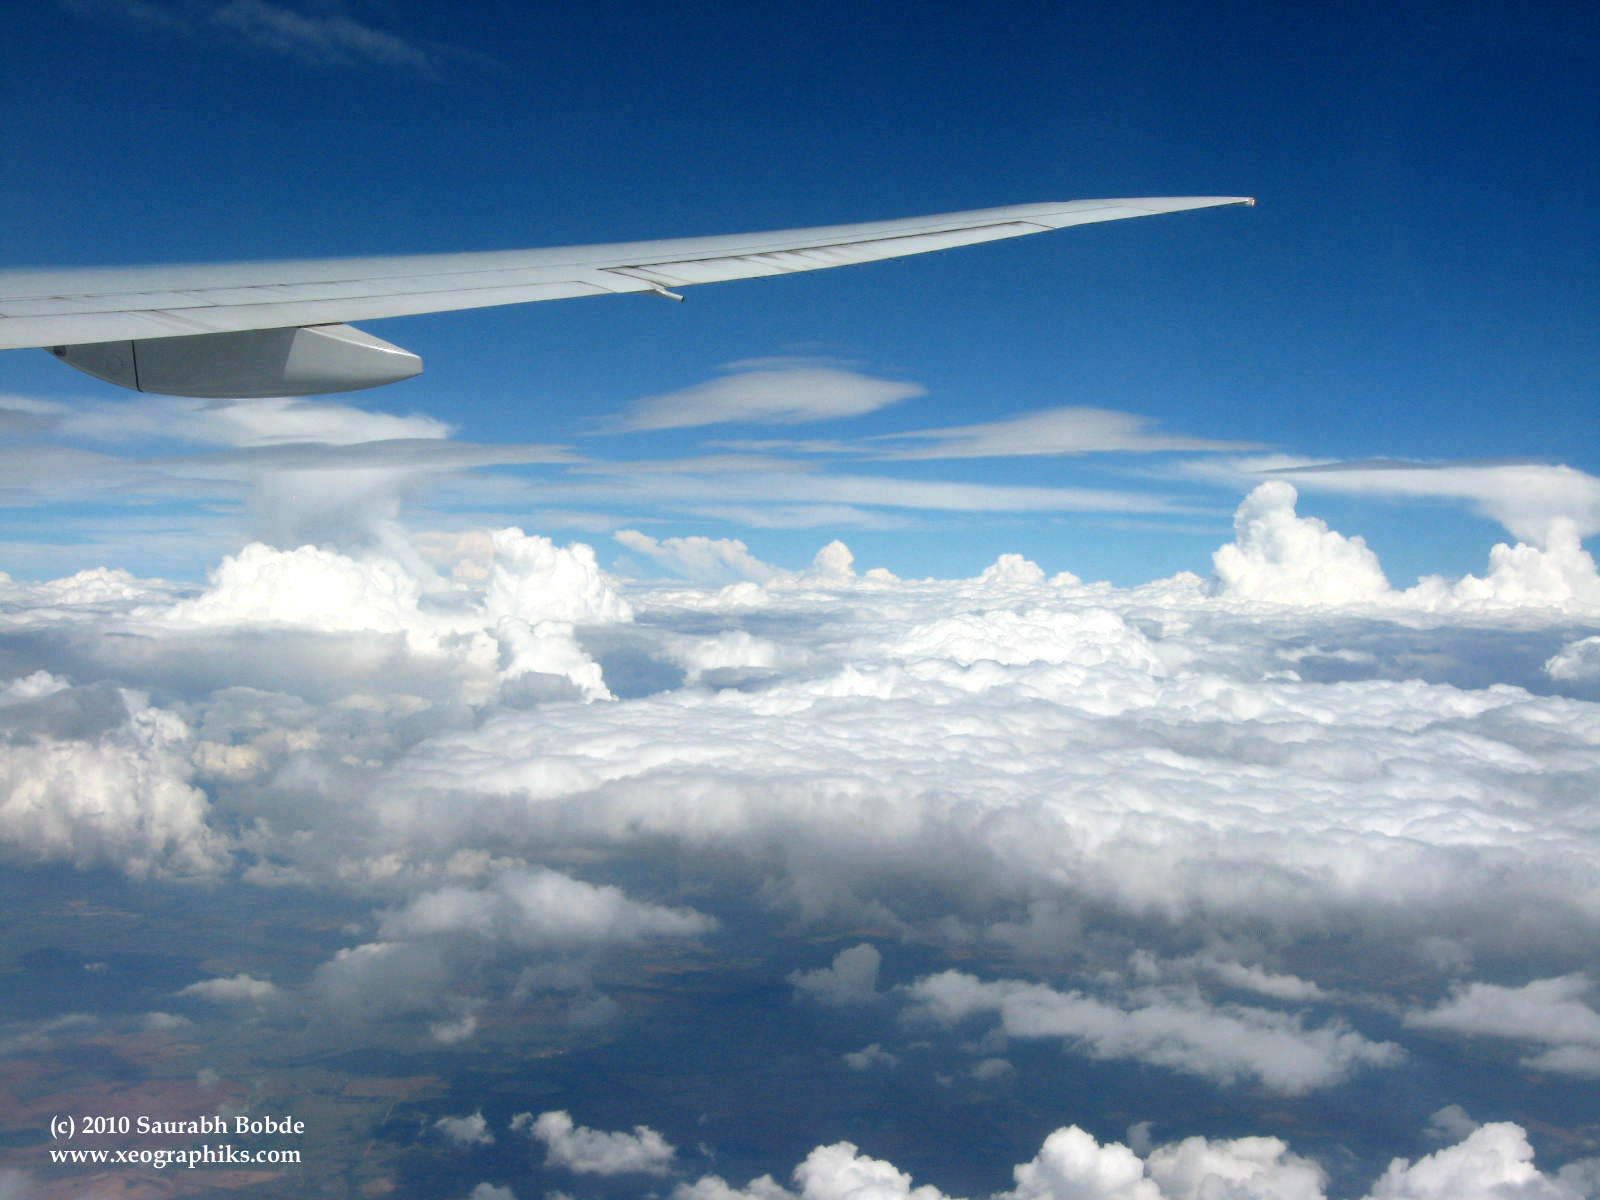 A picture perfect view of blue skies and fluffy white cotton clouds, looking out the window on a flight.